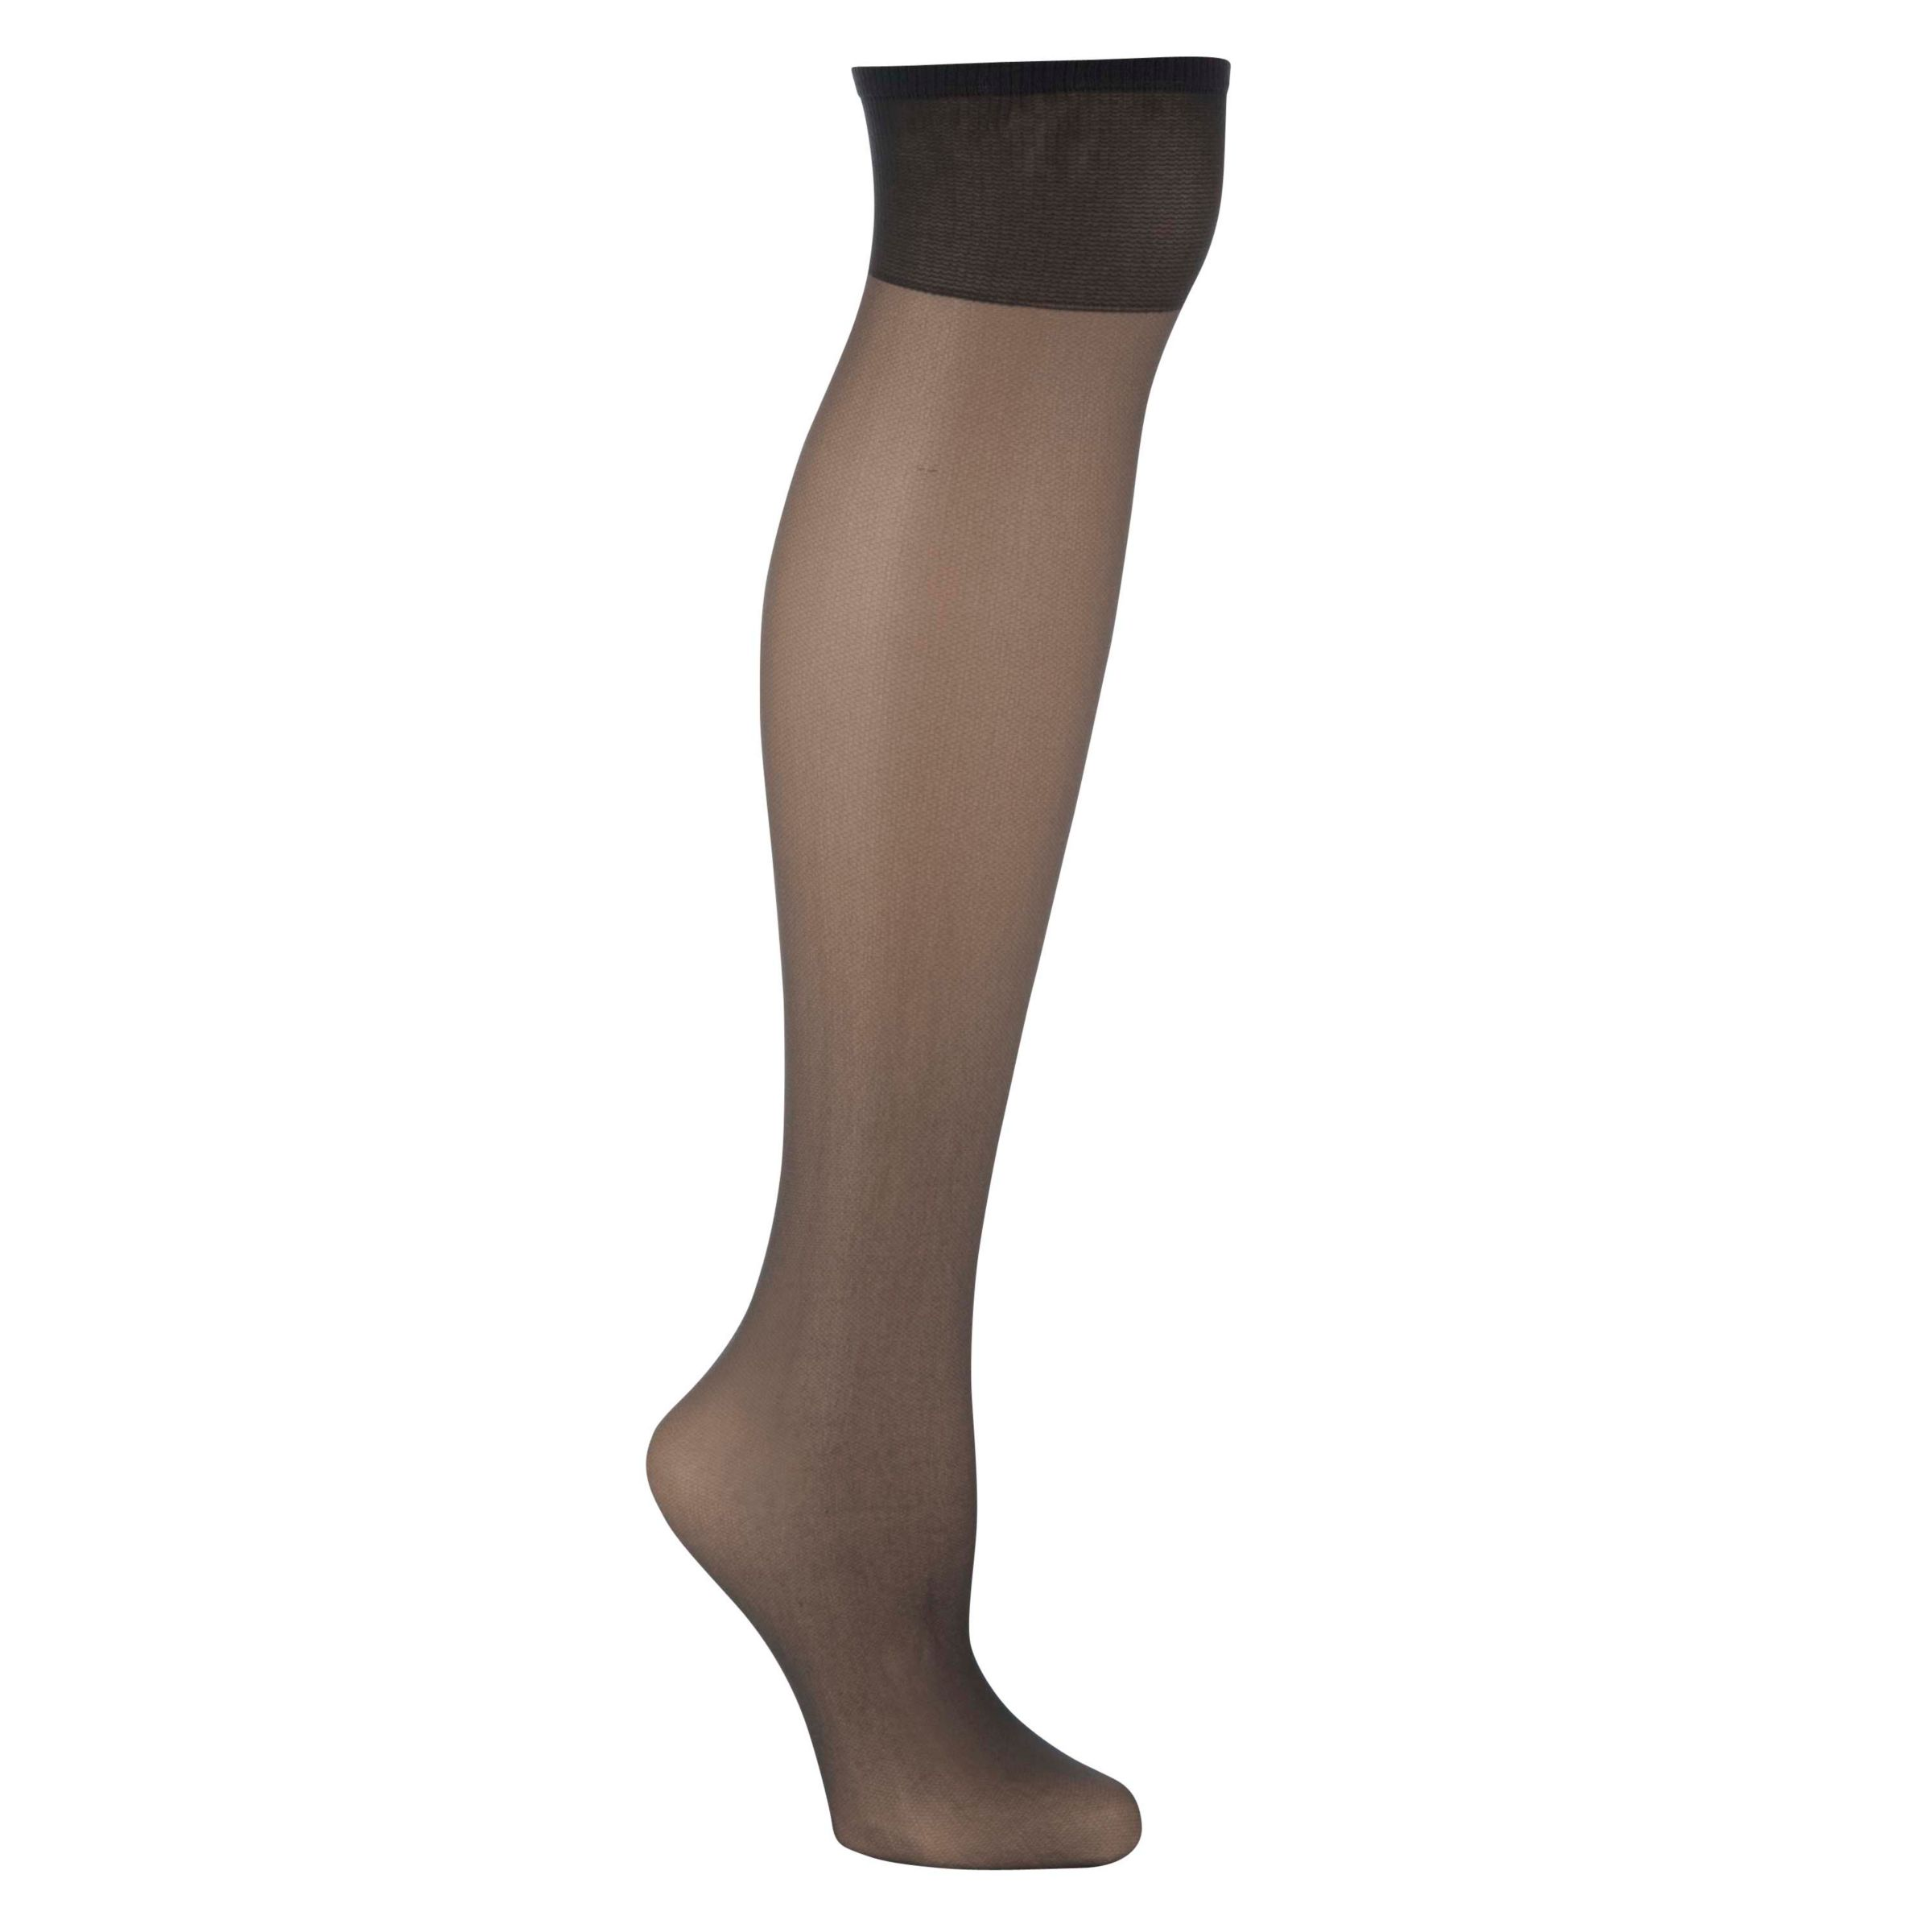 John Lewis 15 Denier Ladder Resist Knee Highs, Pack of 3, Nearly Black XXL